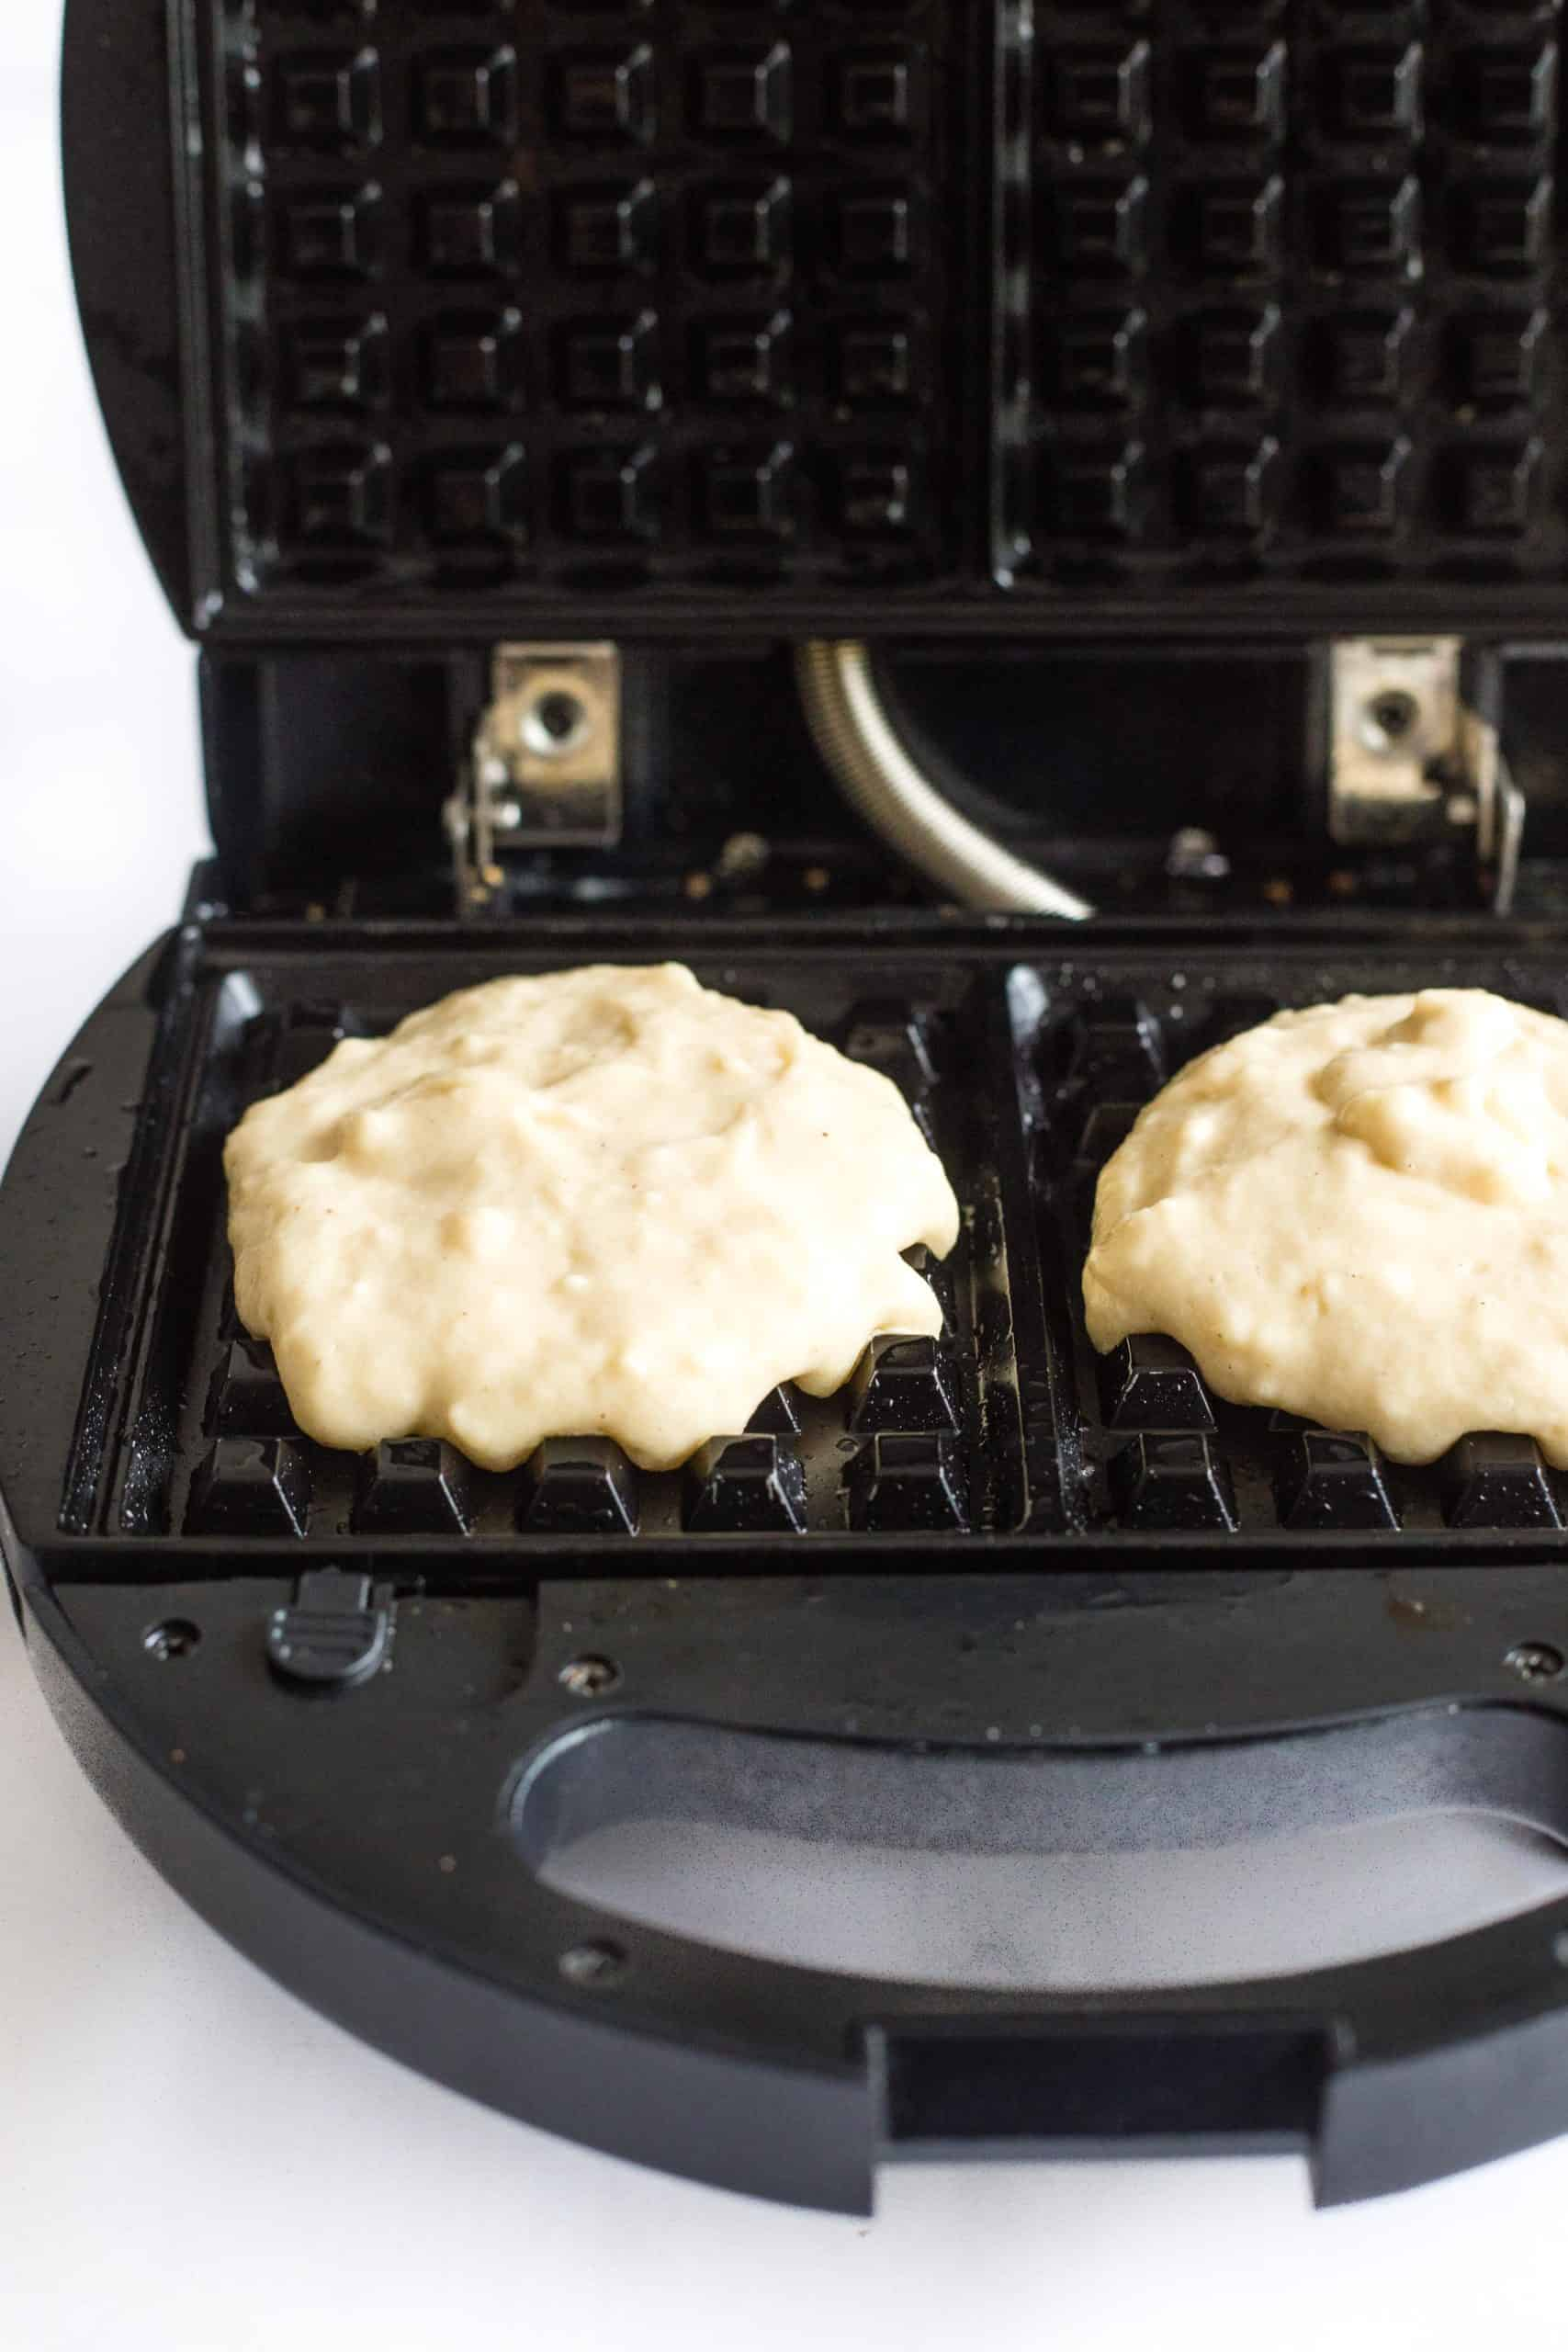 Gluten-free waffle batter poured onto the waffle iron and ready to be cooked.